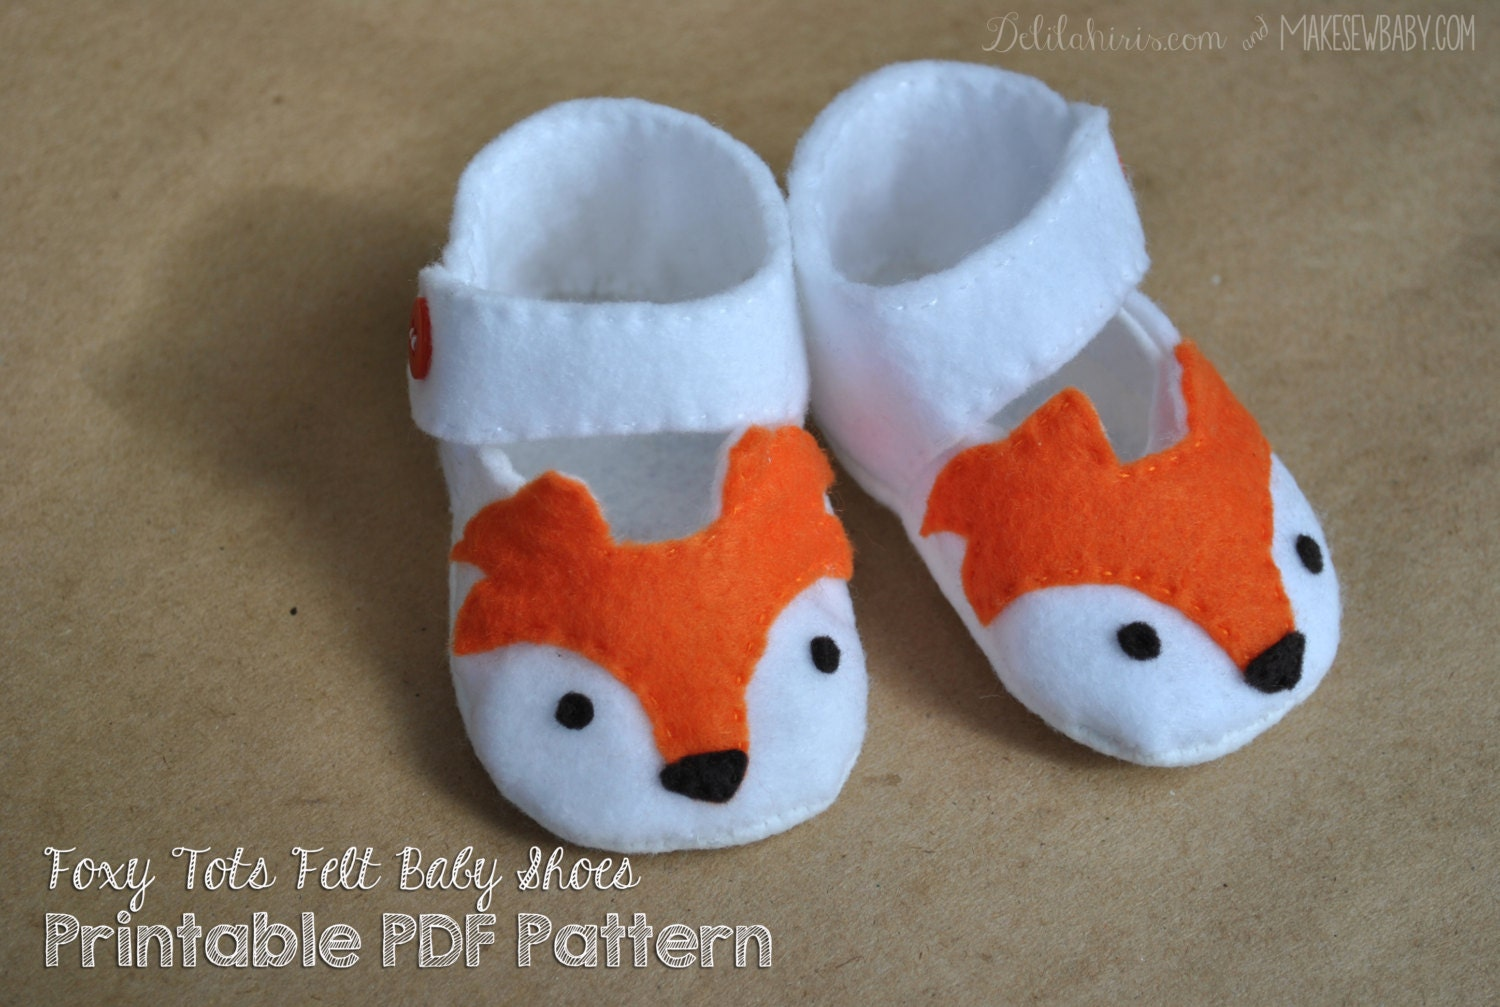 Making Baby Shoes Out Of Felt